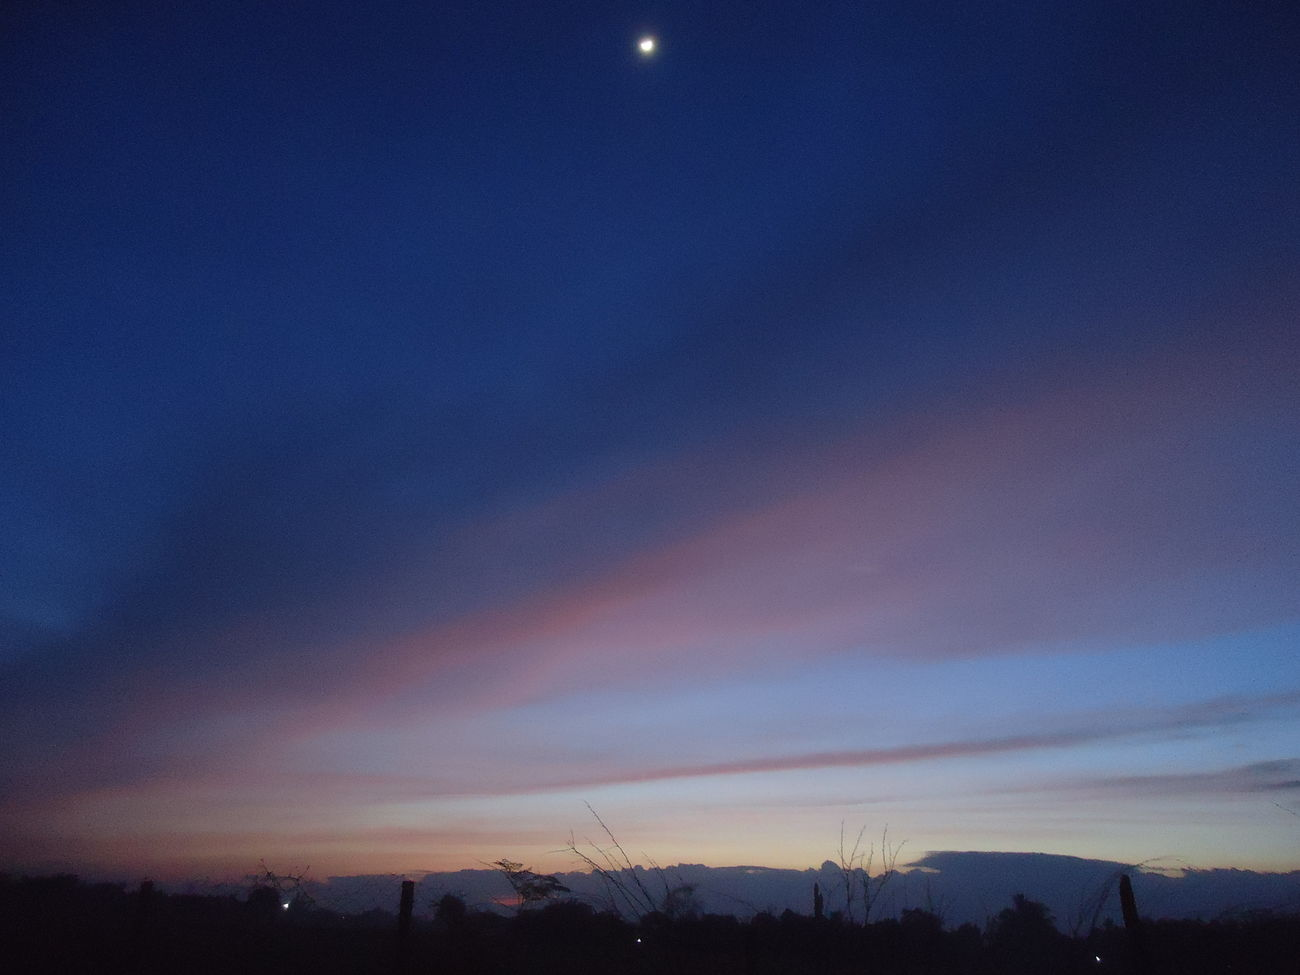 """So here's the story. My alarm woke me up at 4:10a.m. I did some stretching exercised activity and after that, I changed my pajamas into workout suit (as if, I have a proper suit for it, lol). Then, i checked the time and went outside if the sky was still dark. Until I saw this view for a minute. While looking at it, I said """"Sigh, am I looking at the front of both half night and day world?""""..."""